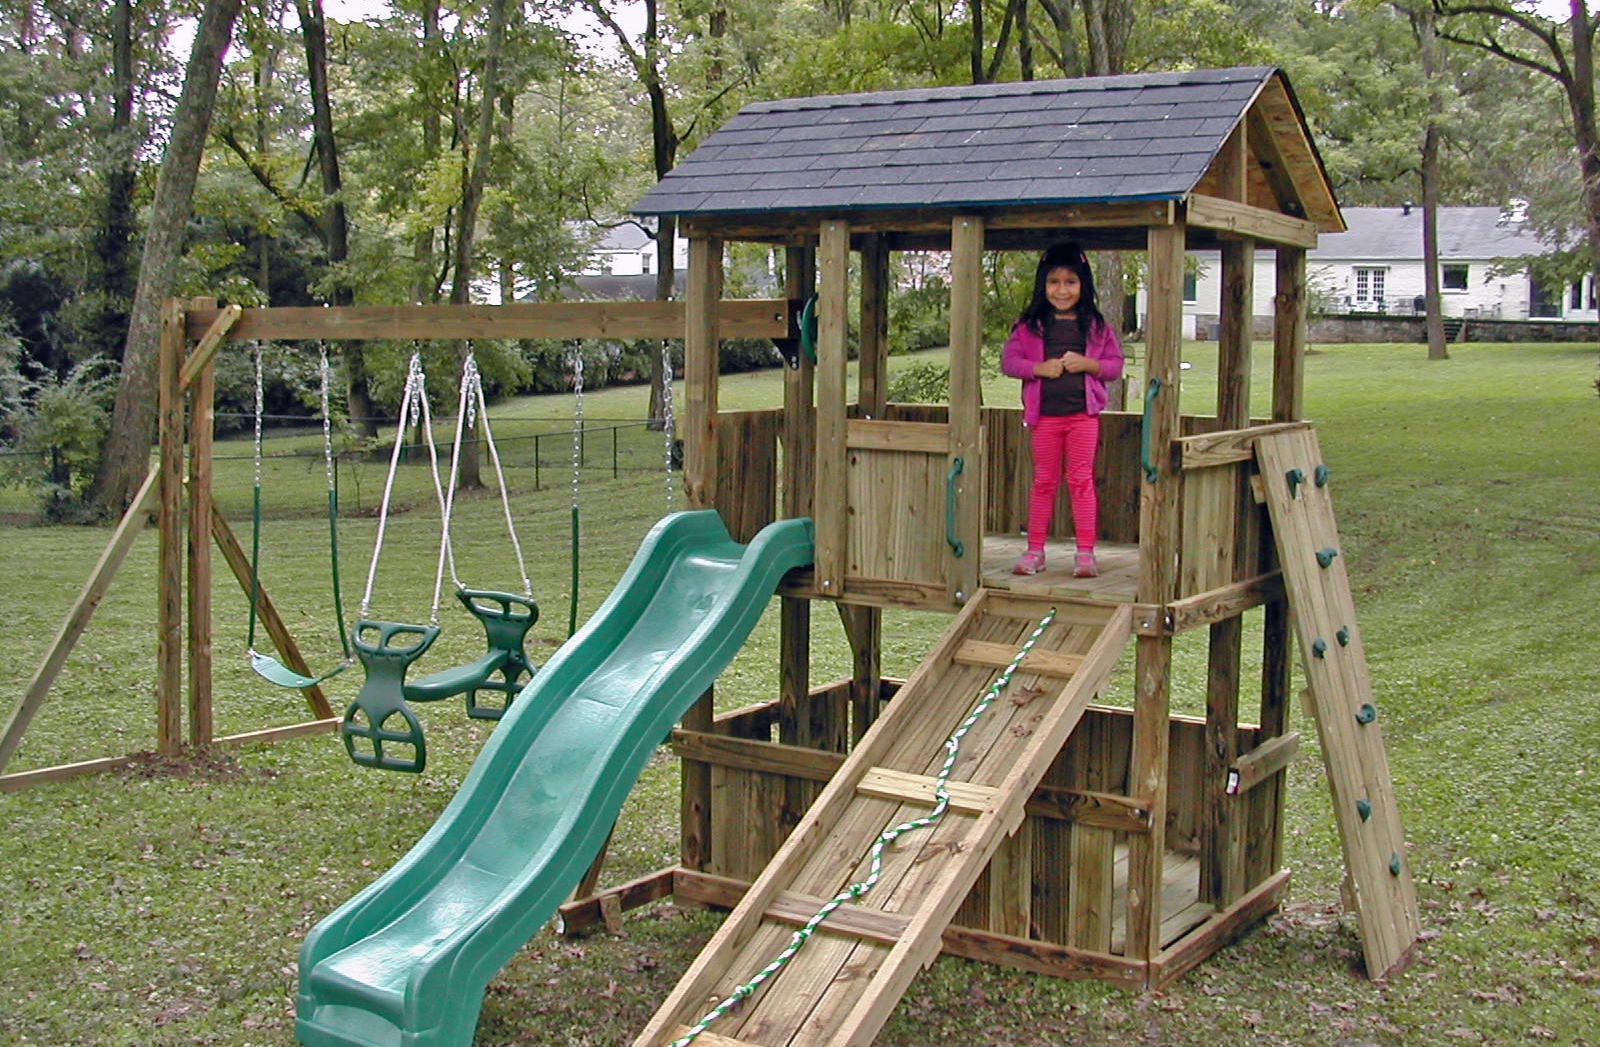 4x6 model as shown $1850 including Wooden Ramp with Rope, Green Rock Climbing Wall, Glider Horse, and Shingled Roof